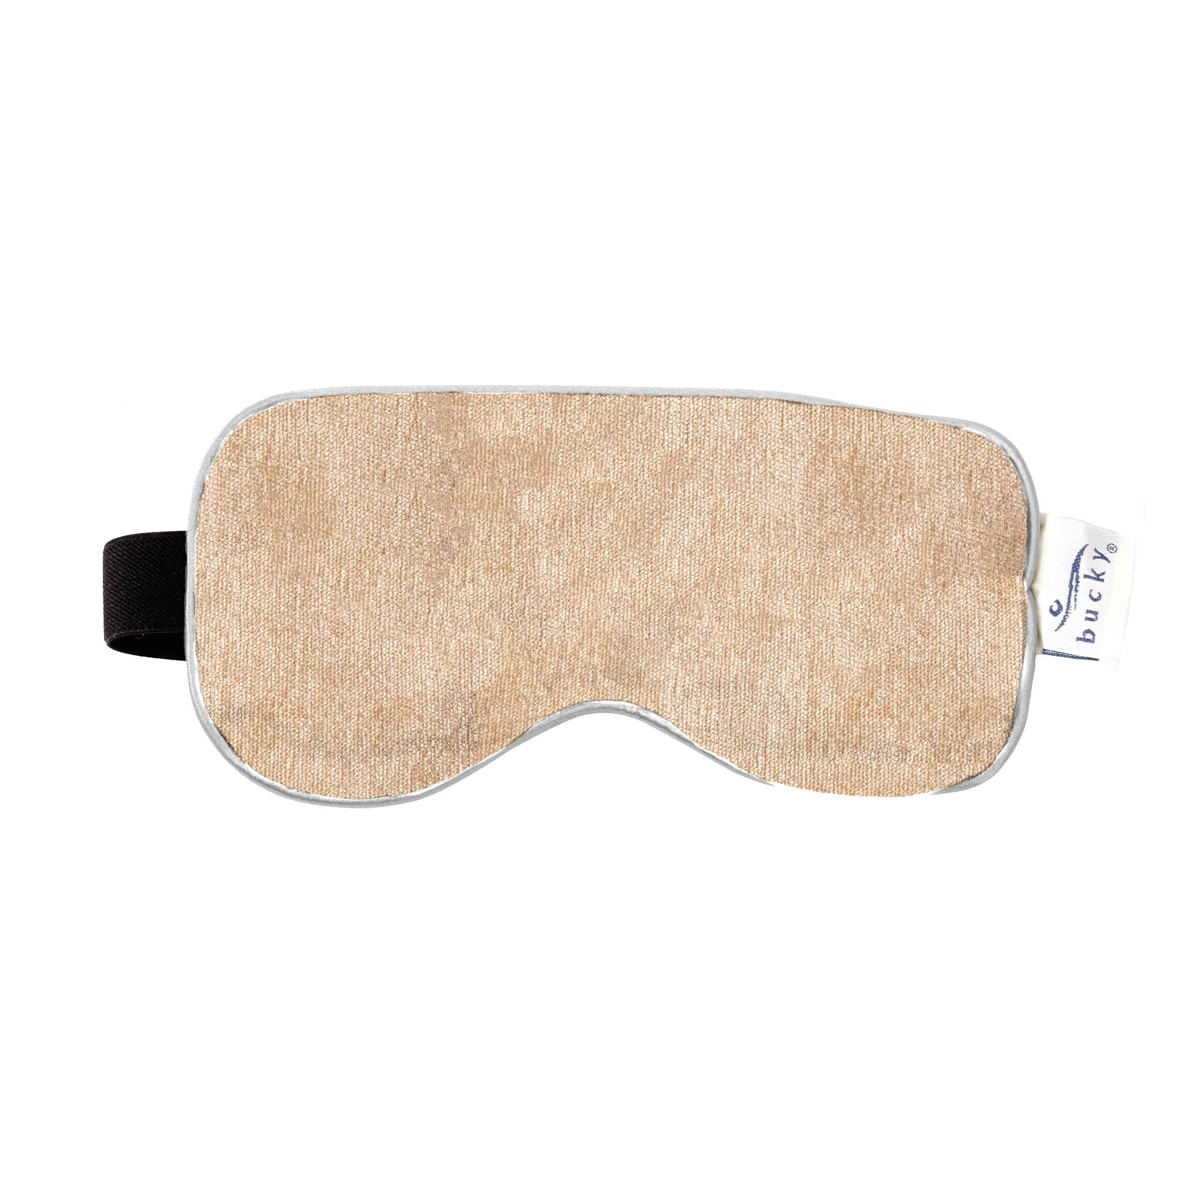 Bucky Products Spa Collection Hot/cold Therapy Eye Mask In Sand